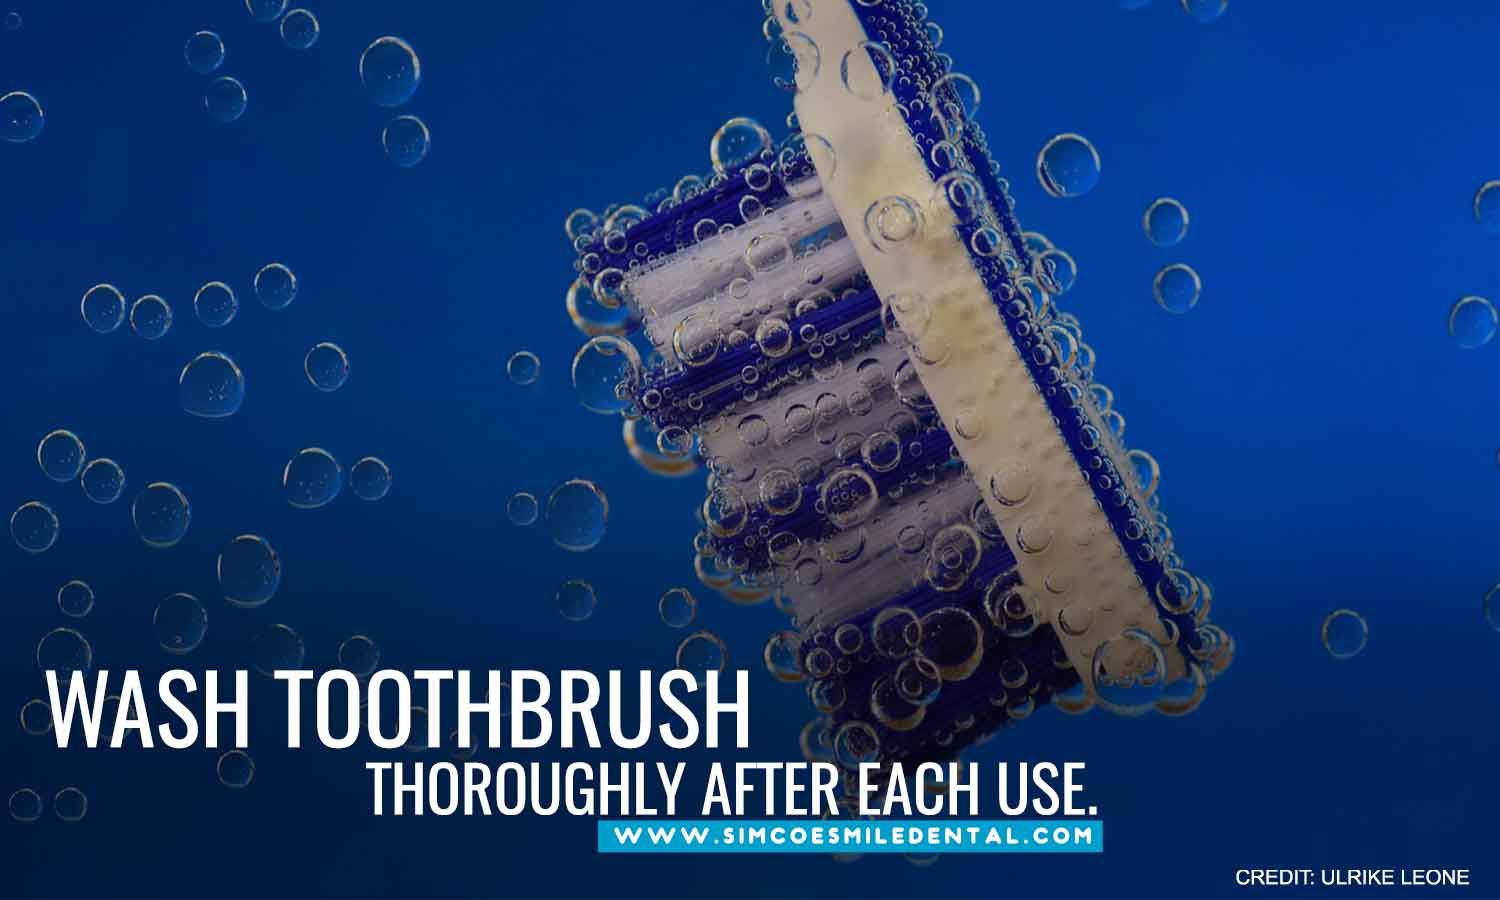 Wash-toothbrush-thoroughly-after-each-use How to Help Your Toothbrush Take Care of Your Teeth